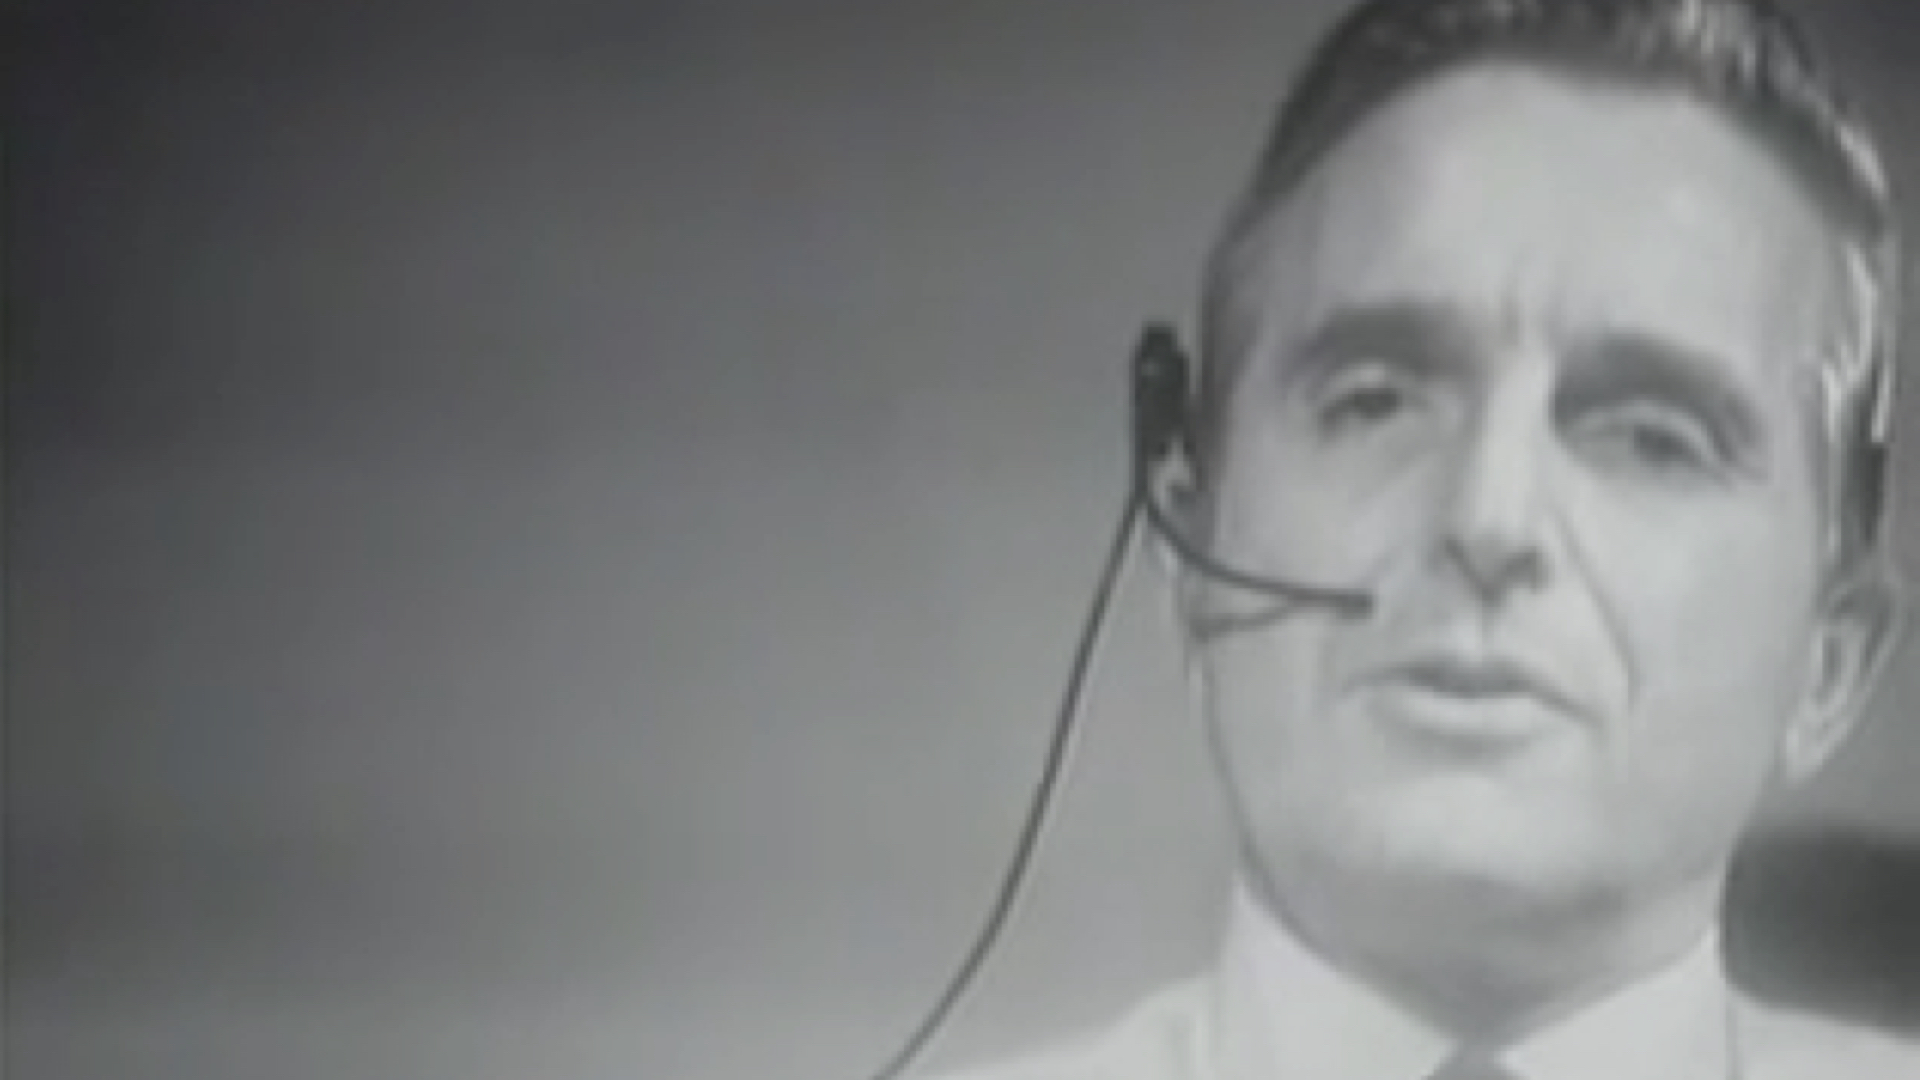 A screenshot from The Mother Of All Demos showing Douglas Engelbart wearing a headset.